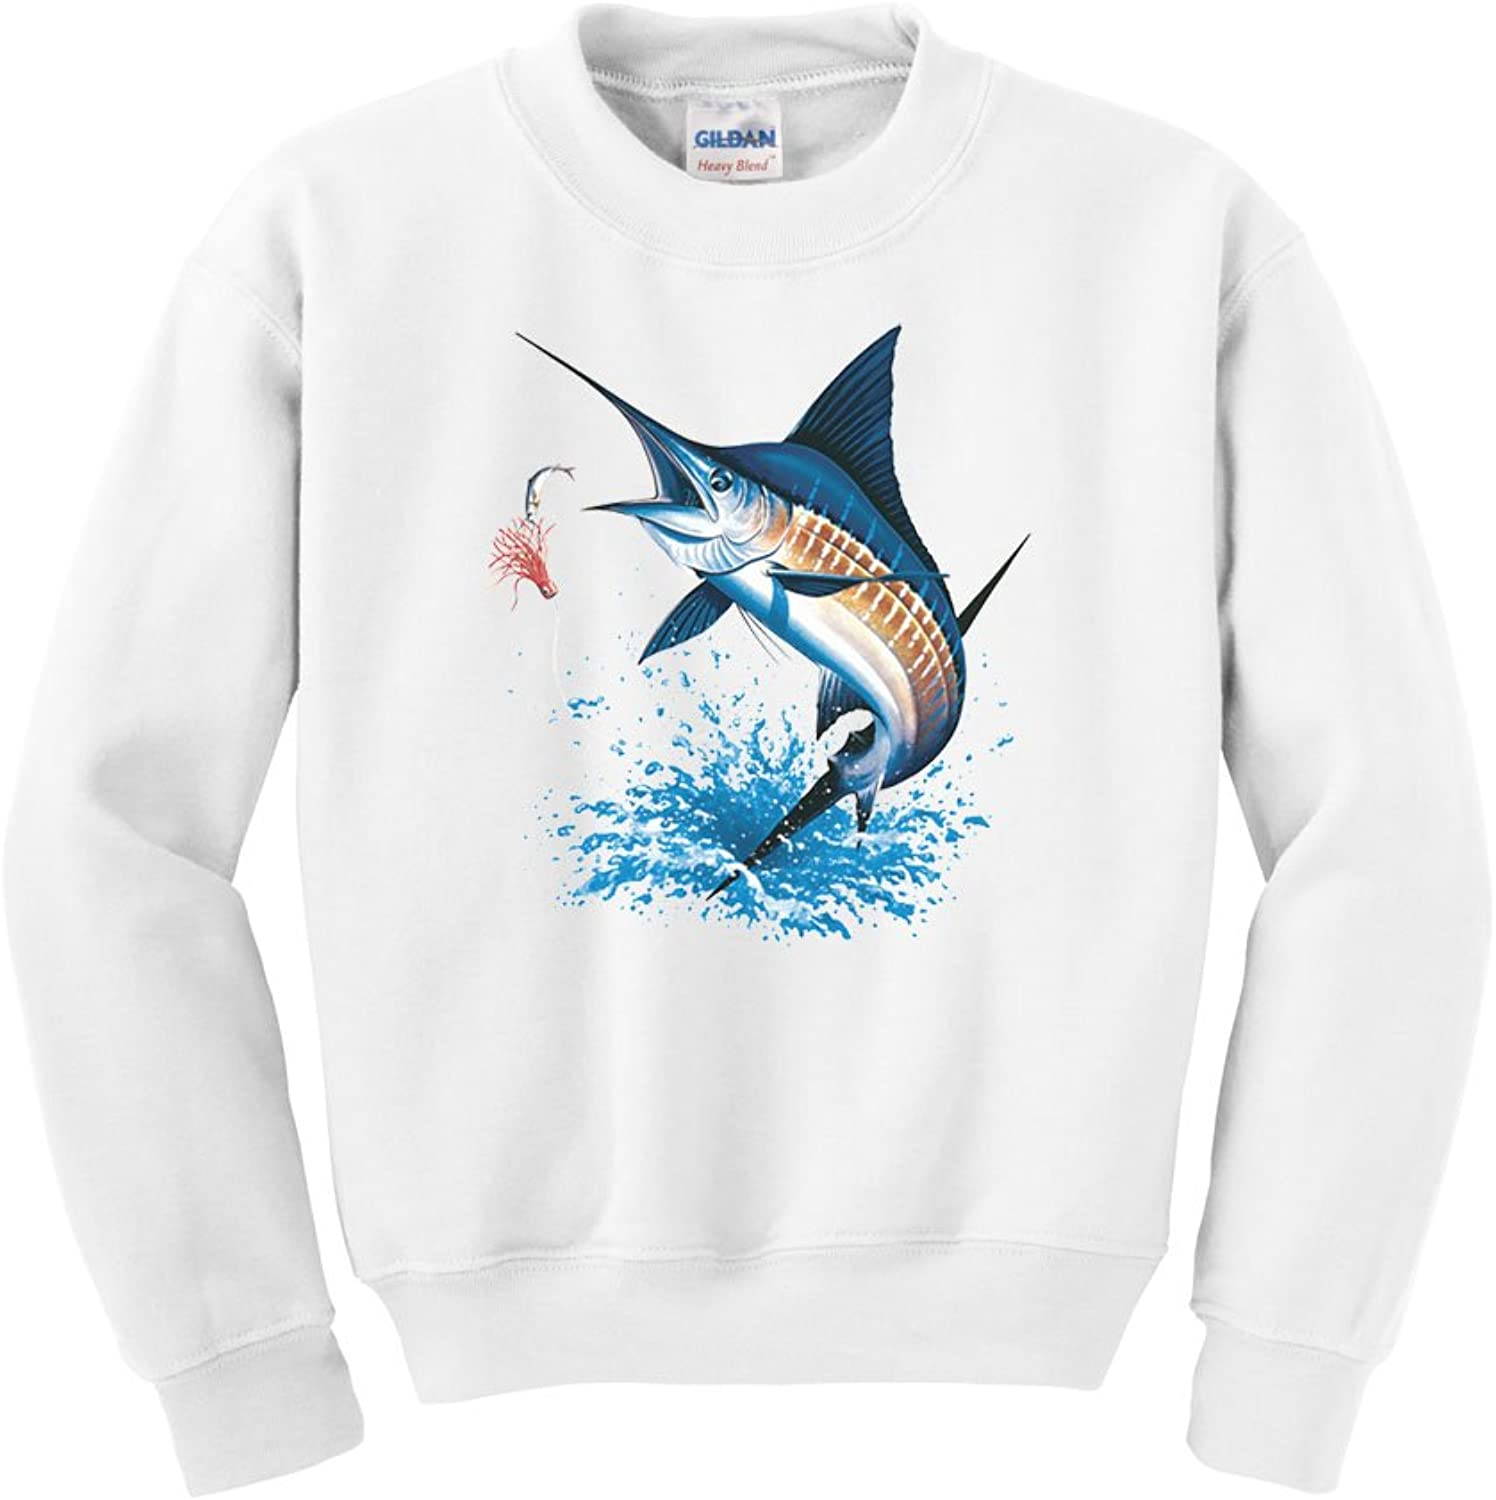 Express Yourself blueee Marlin Crew Neck Sweatshirt  Mens Sizing